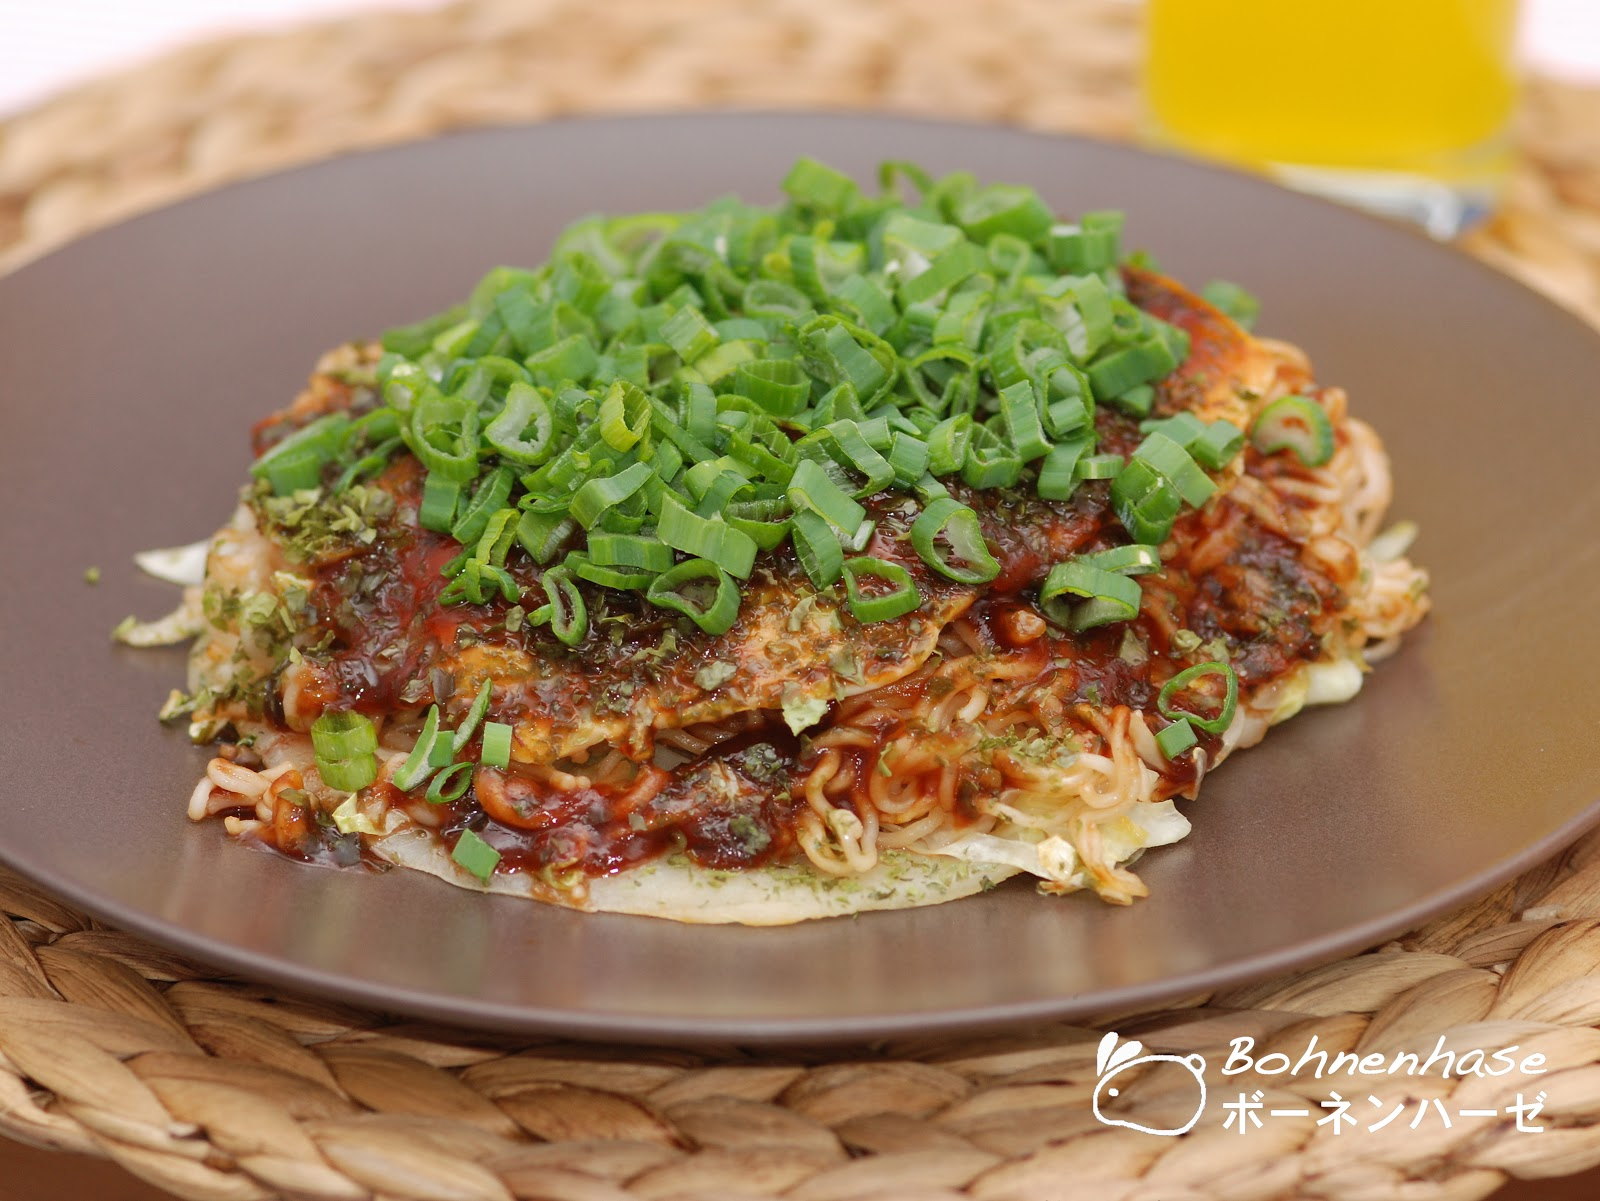 ... osaka style okonomiyaki is the hiroshima style okonomiyaki it is a bit